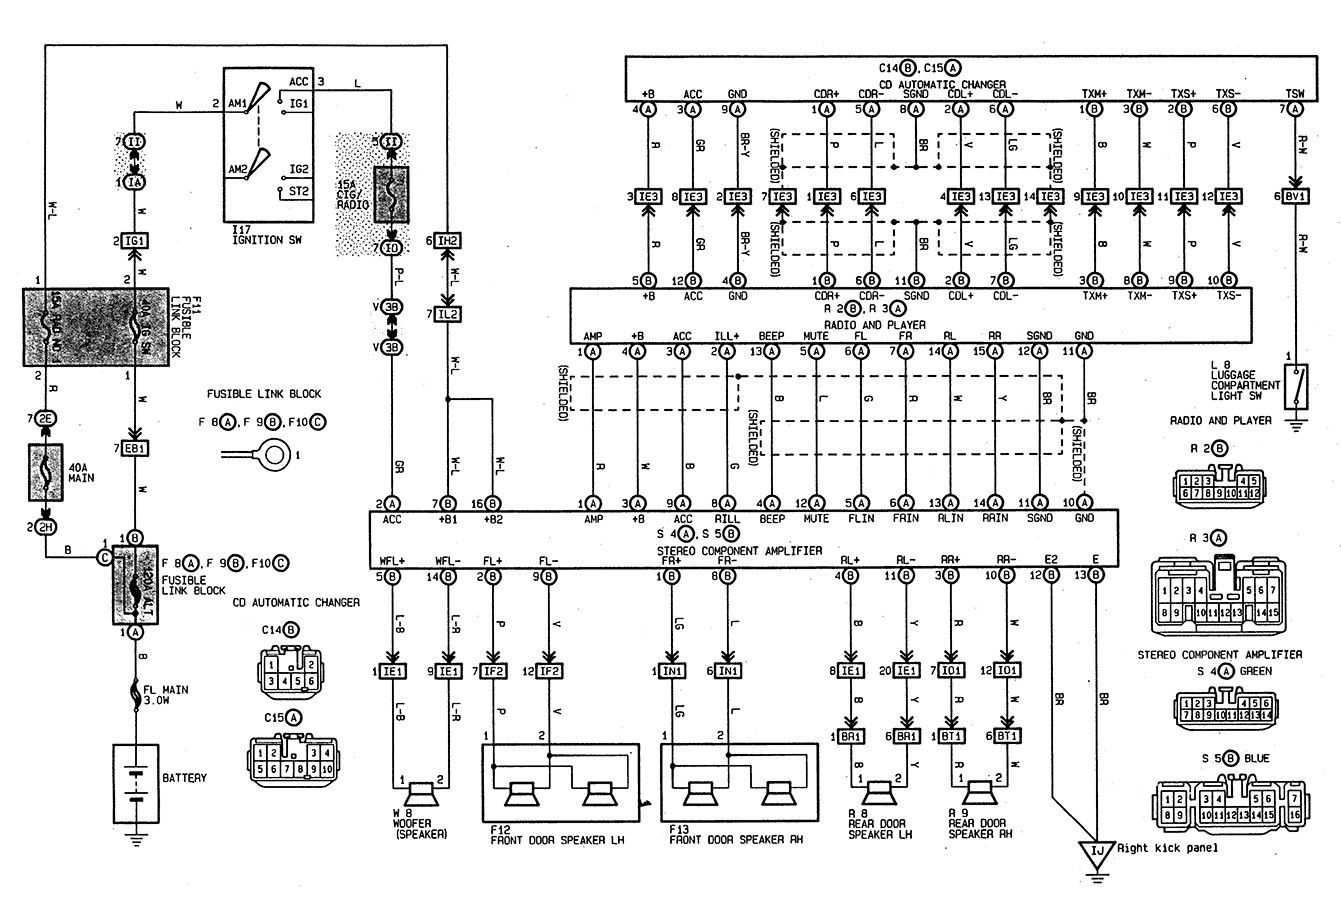 2002 Toyota 4runner Stereo Wiring Diagram Electrical Diagrams 1997 Radio Wire Chevy Impala